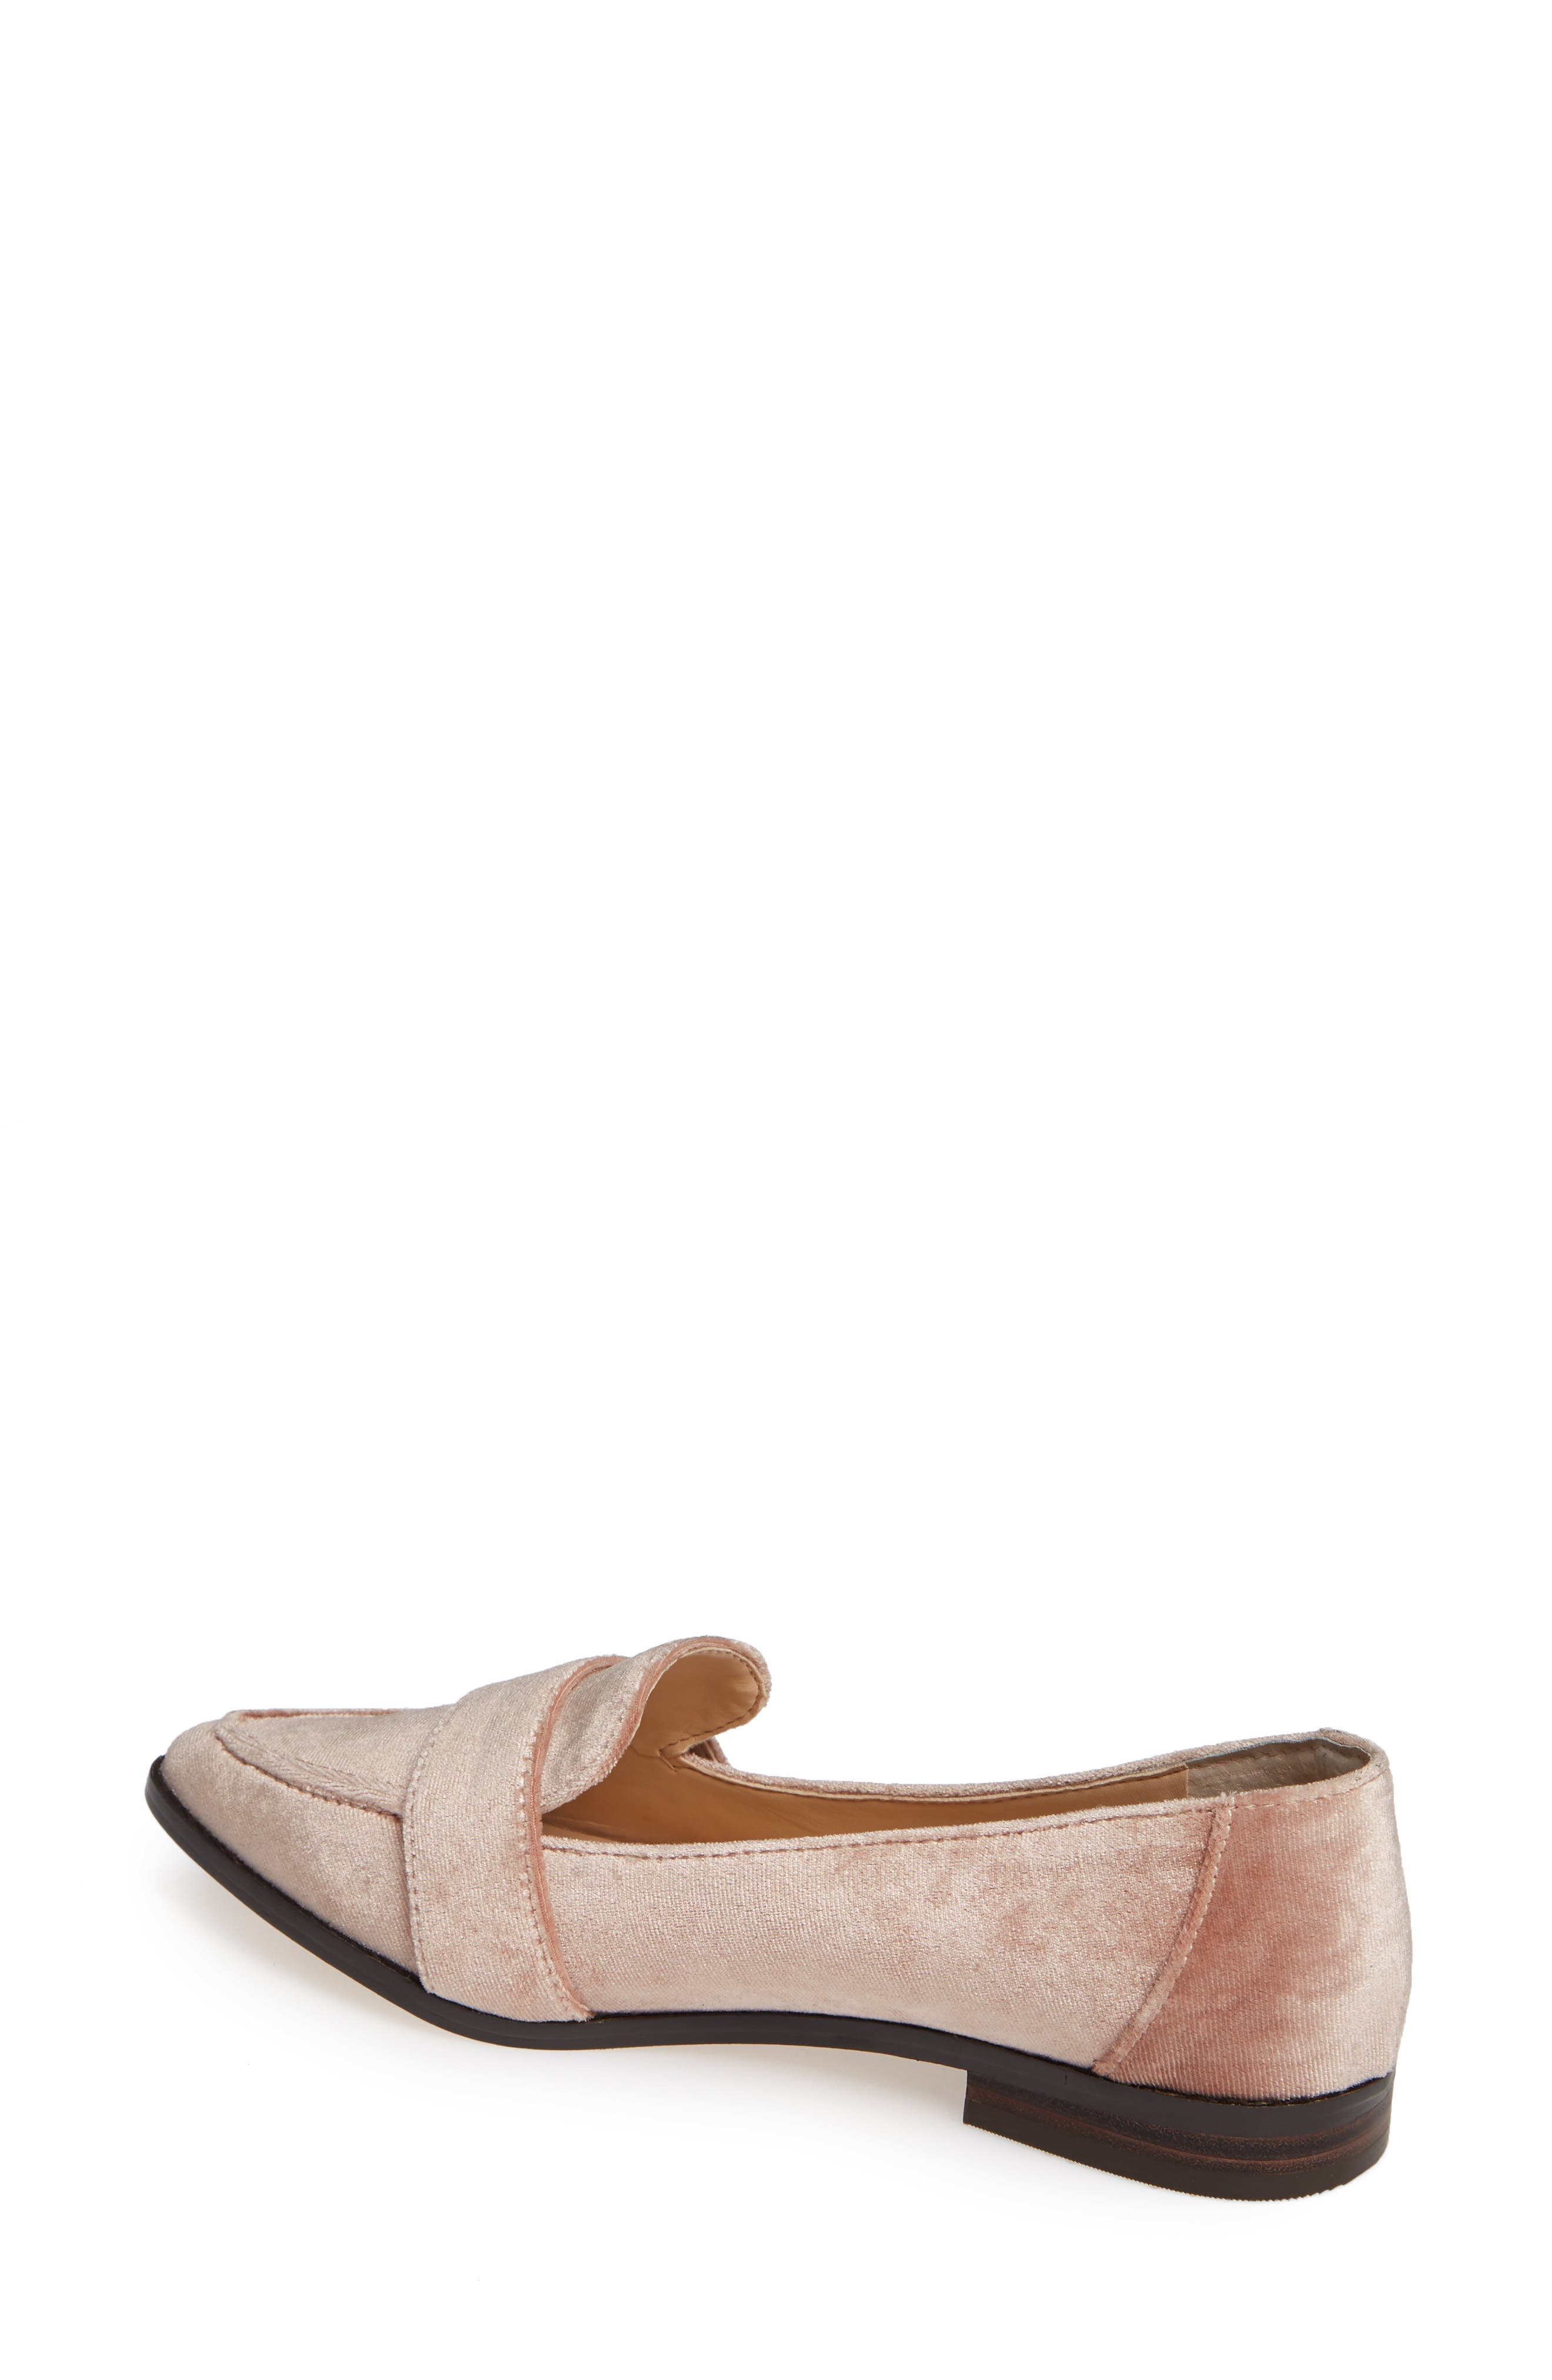 Edie Pointy Toe Loafer,                             Alternate thumbnail 2, color,                             Moonlight Velvet